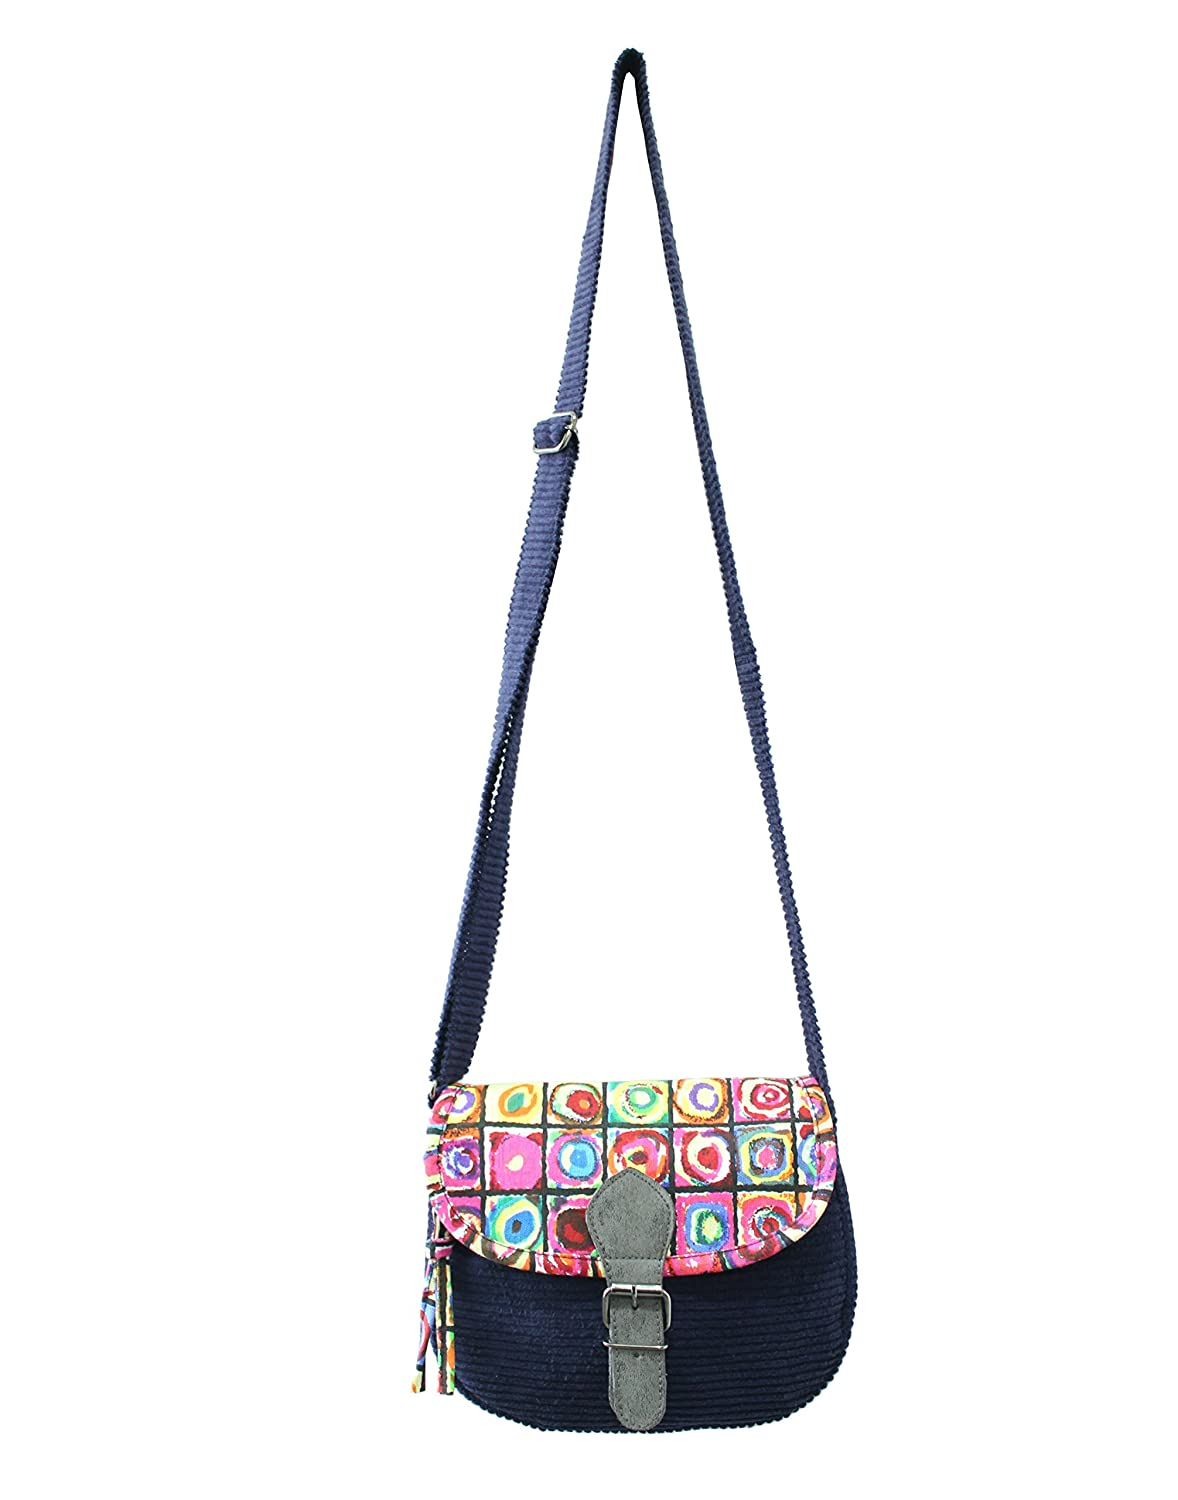 Anekaant Women's Whimsical Corduroy and Printed Canvas Sling Bag - Assorted